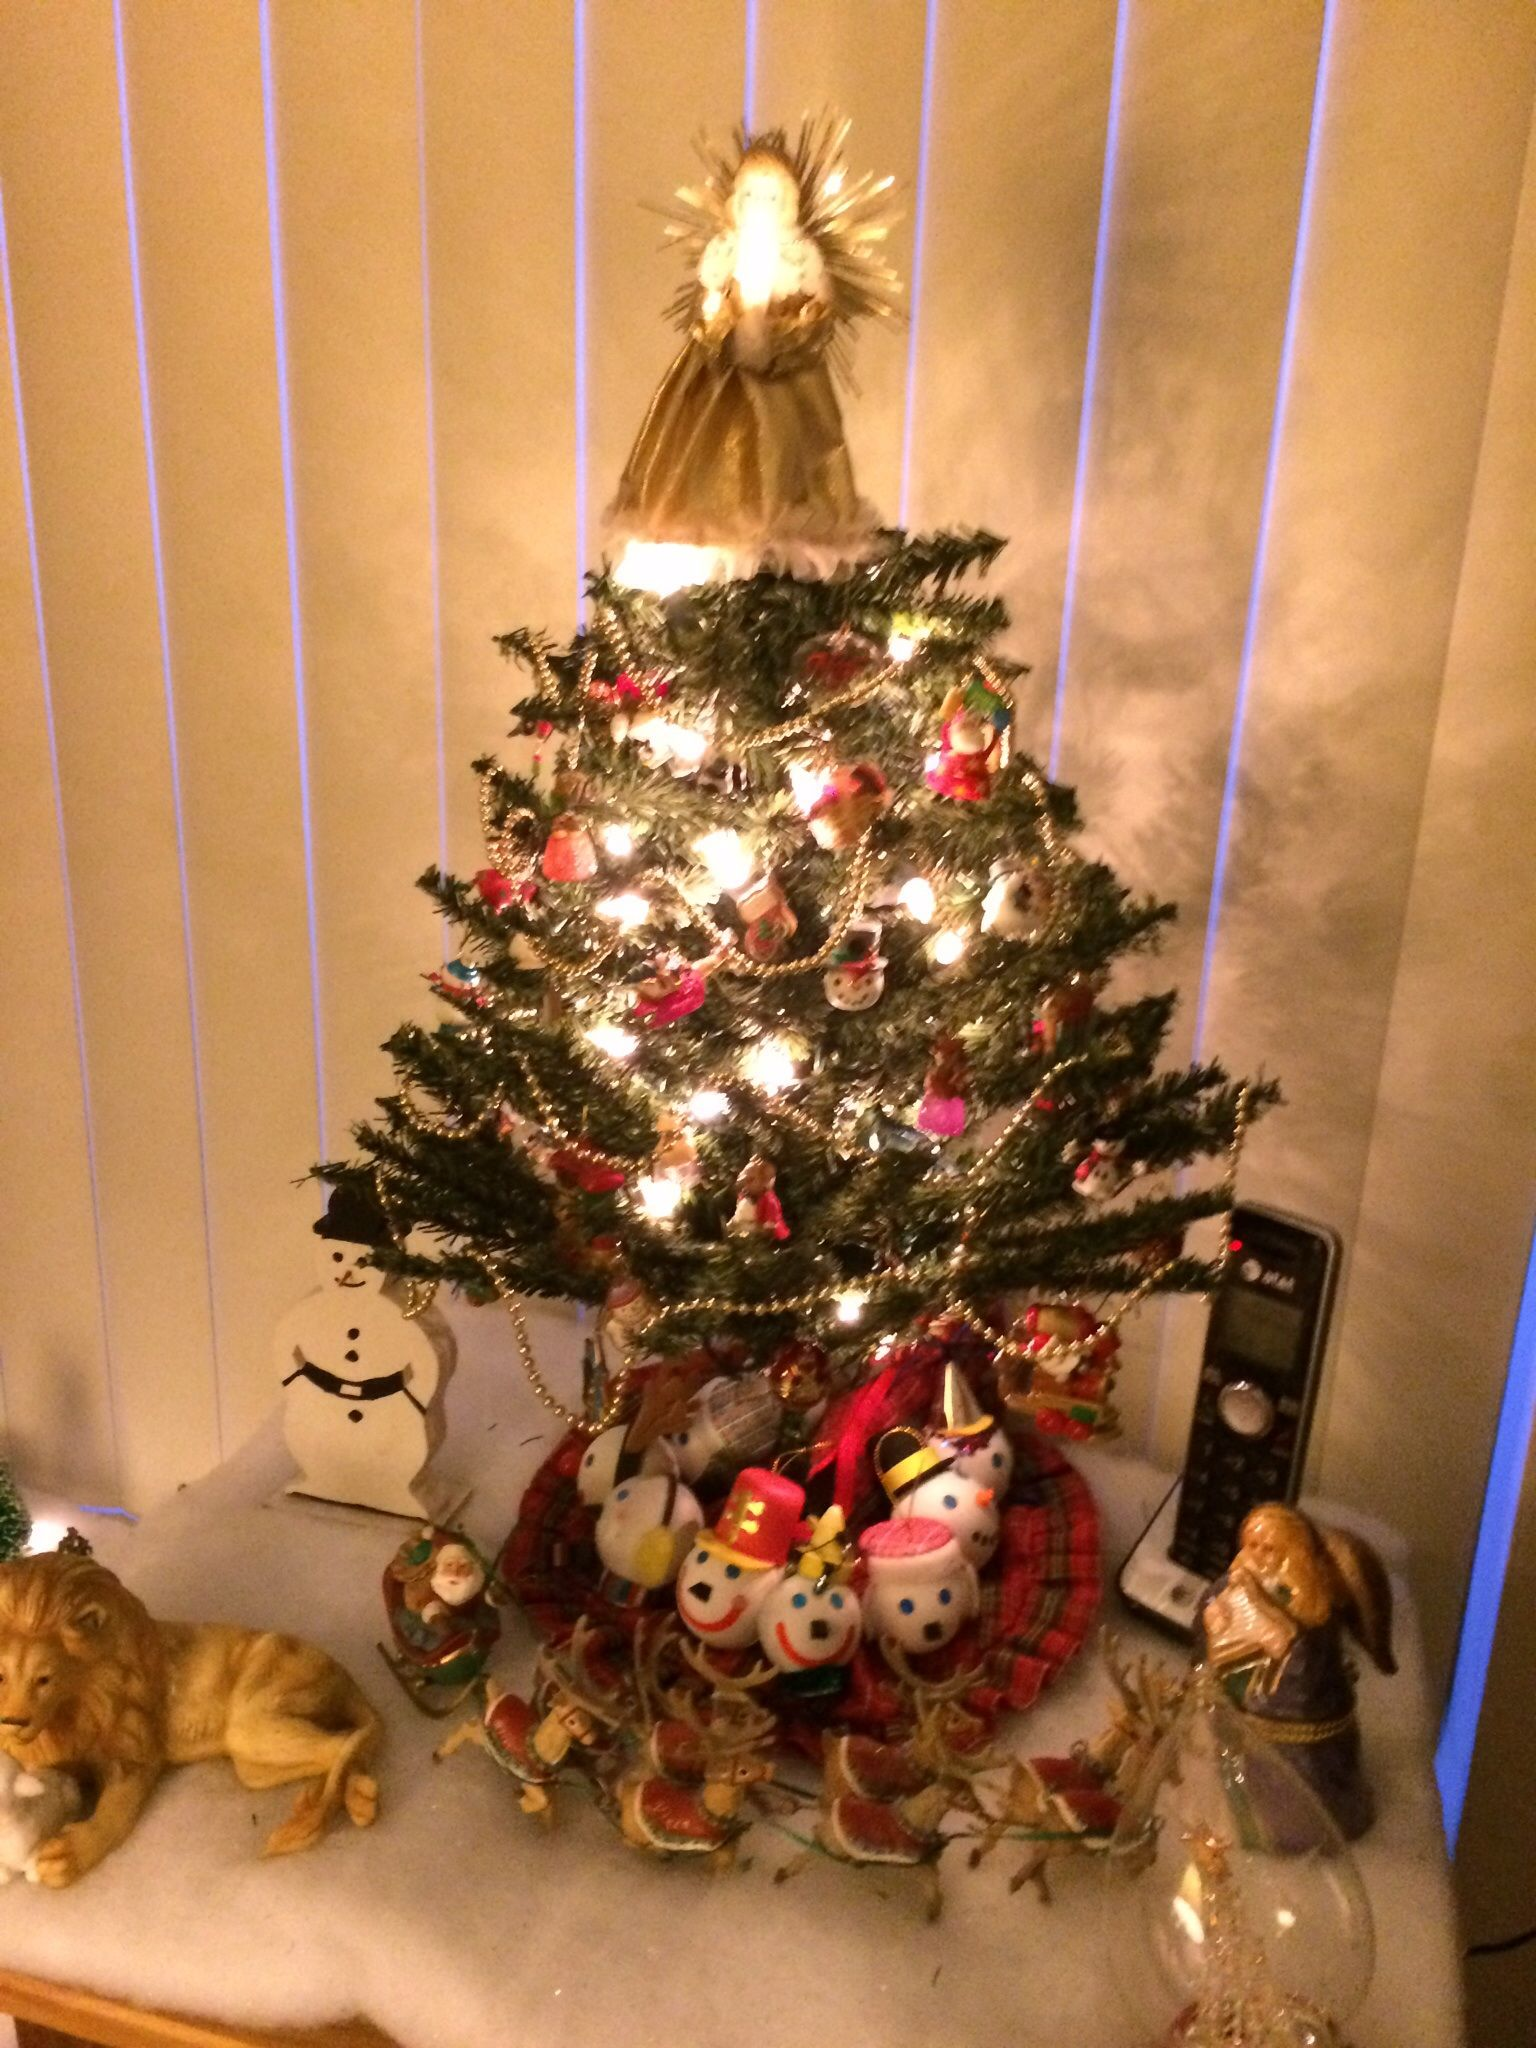 My Miniature Tree With All Hallmark Ornaments For The First Time Hallmark Christmas Ornaments Hallmark Ornaments Christmas Ornaments